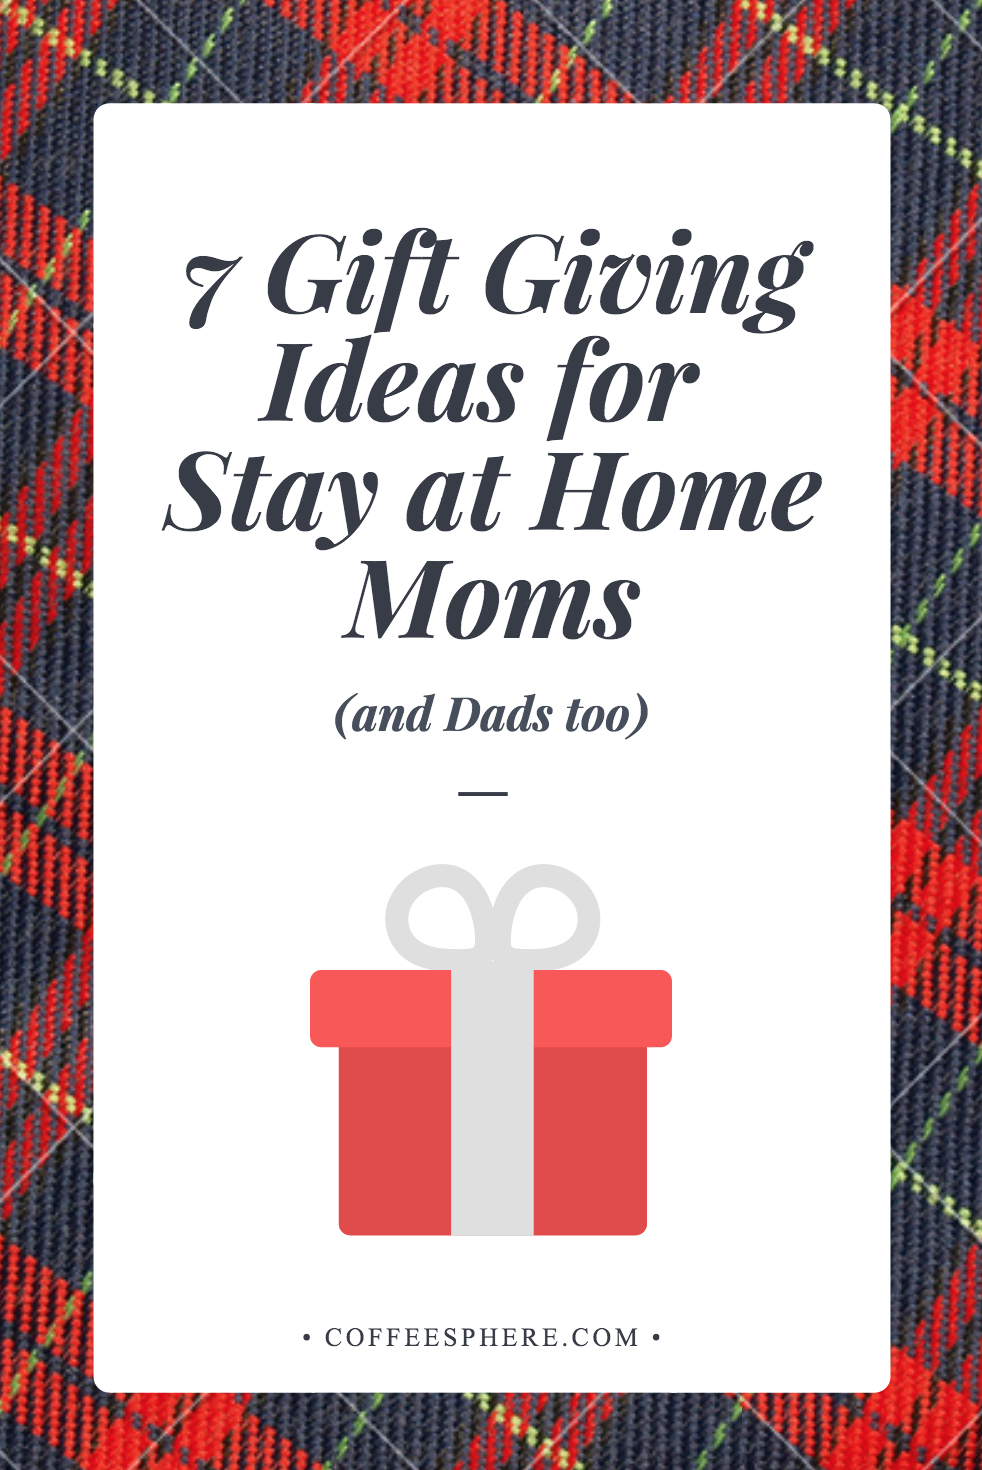 gift giving ideas 7 gifts for coffee loving stay at home moms